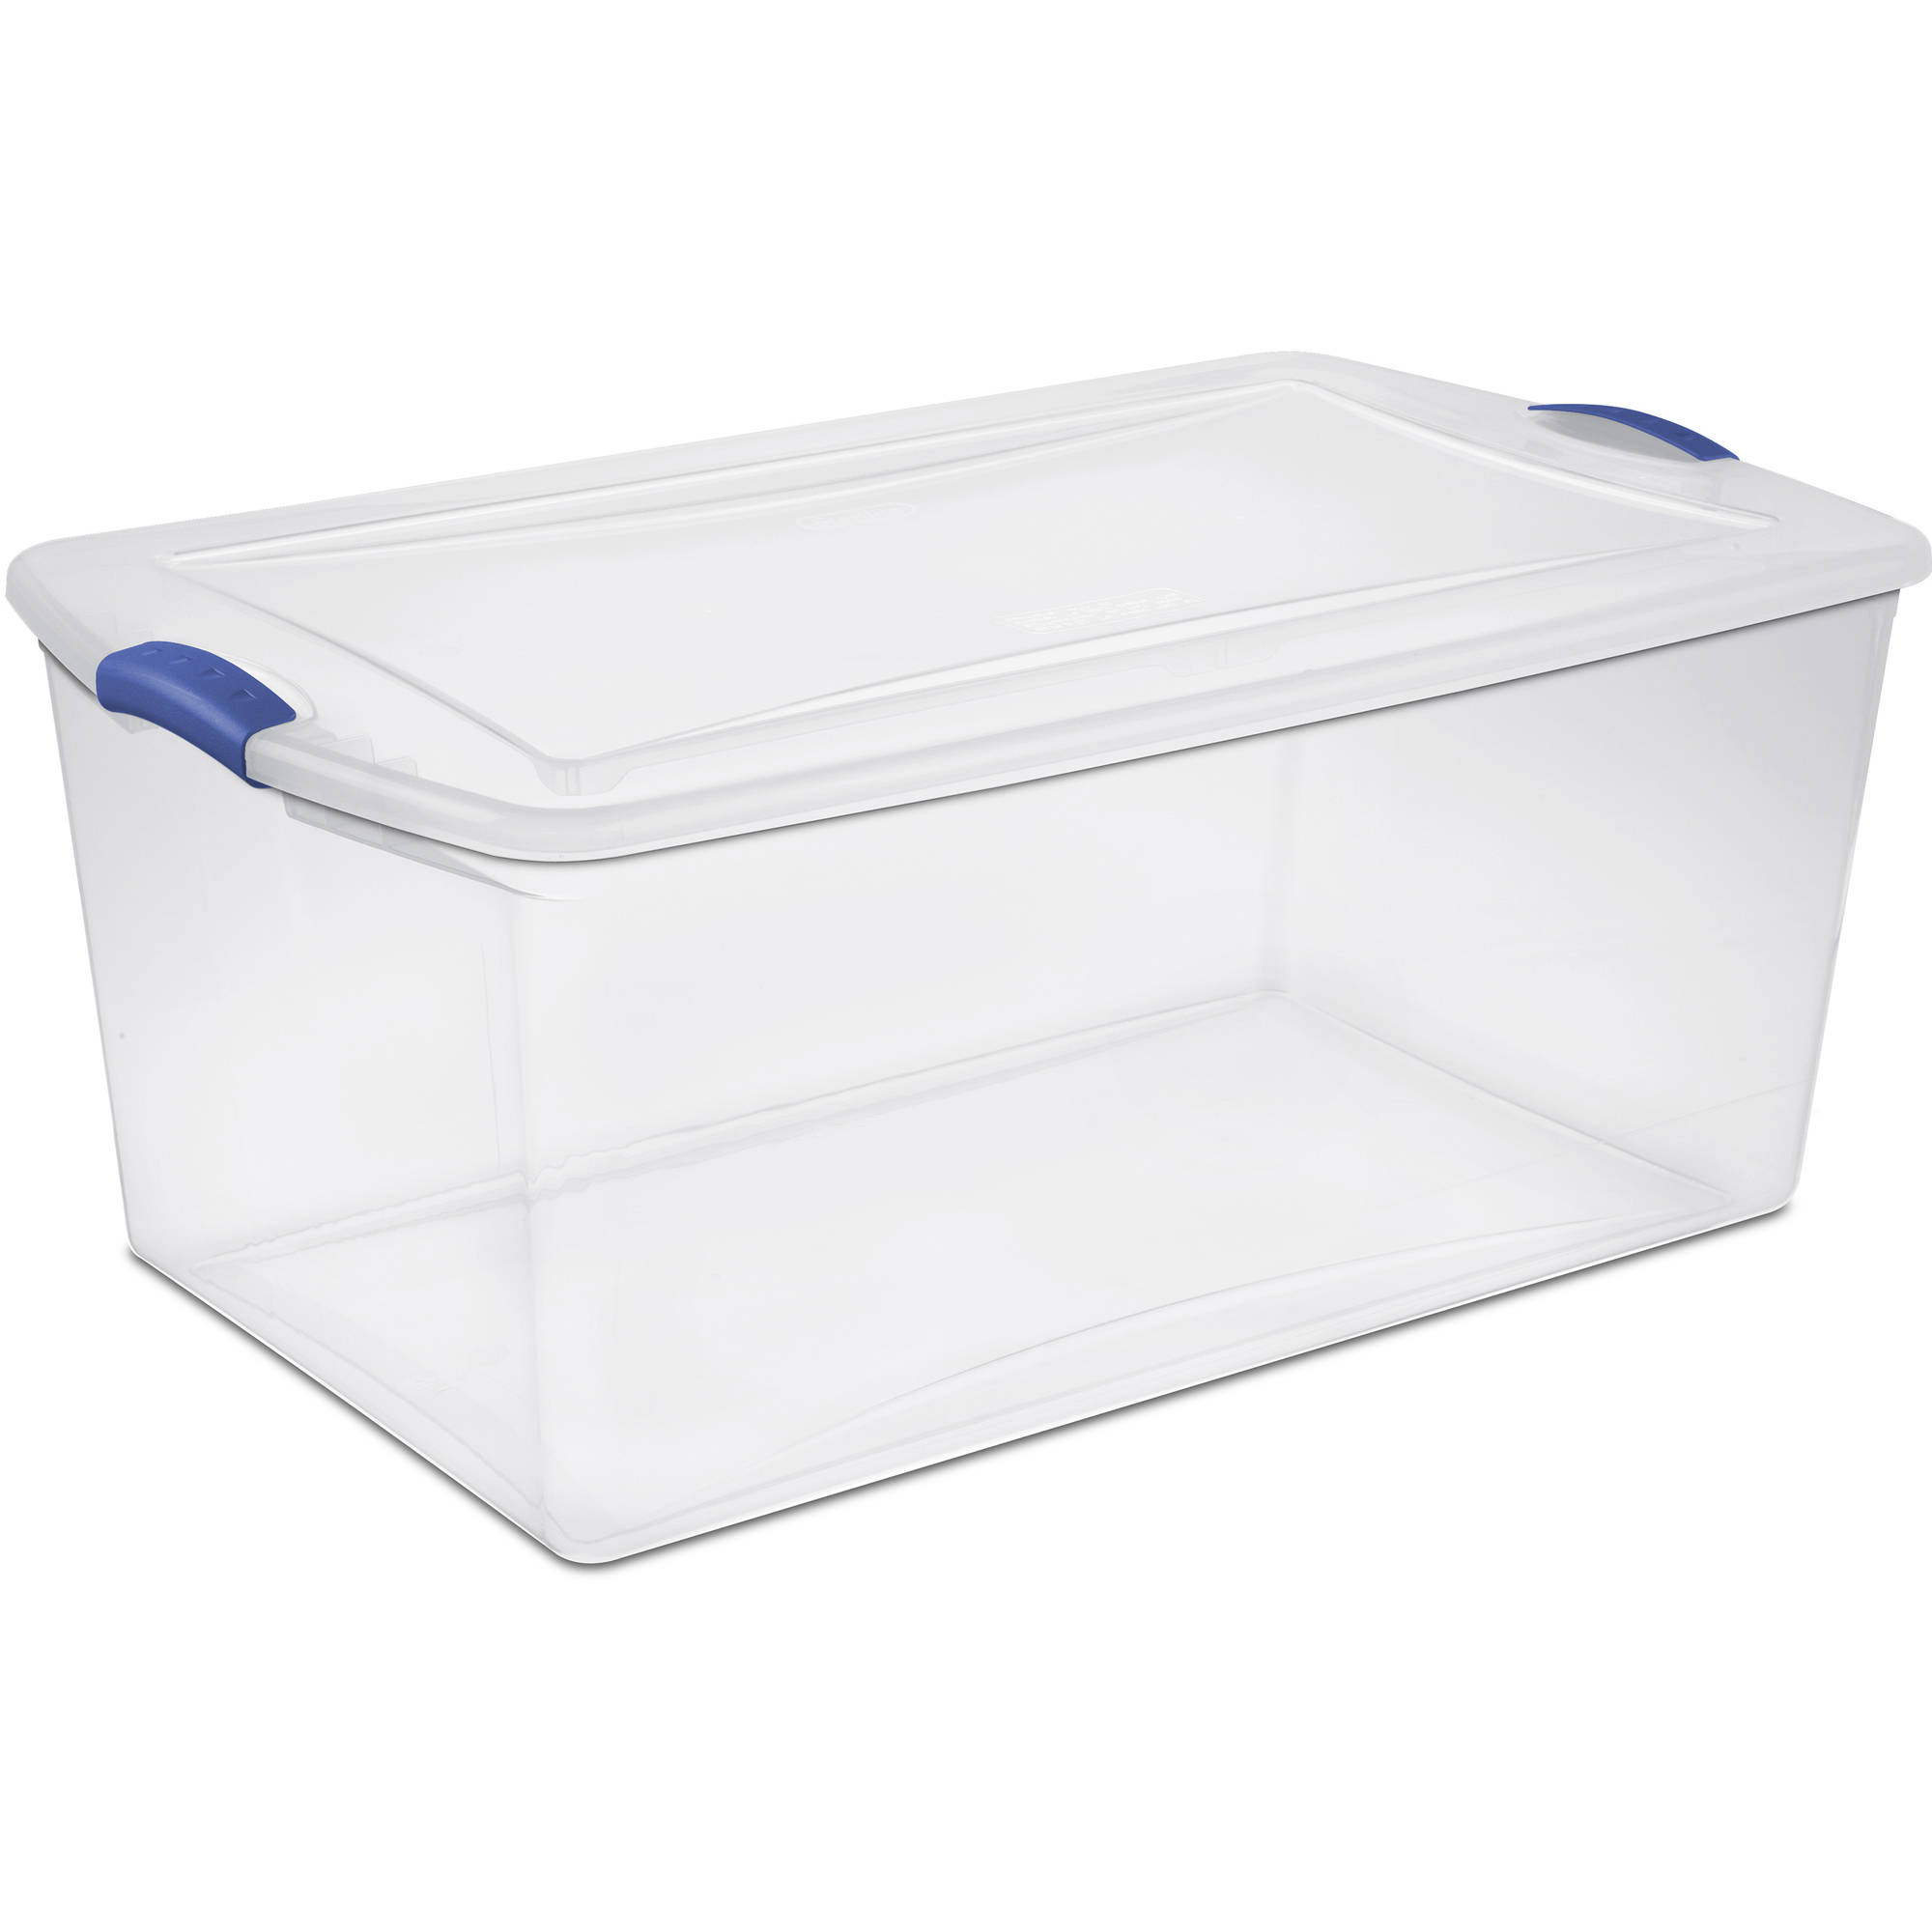 Sterilite 105 Quart Latch Box- Stadium Blue (Available in Case of 4 or Single Unit)